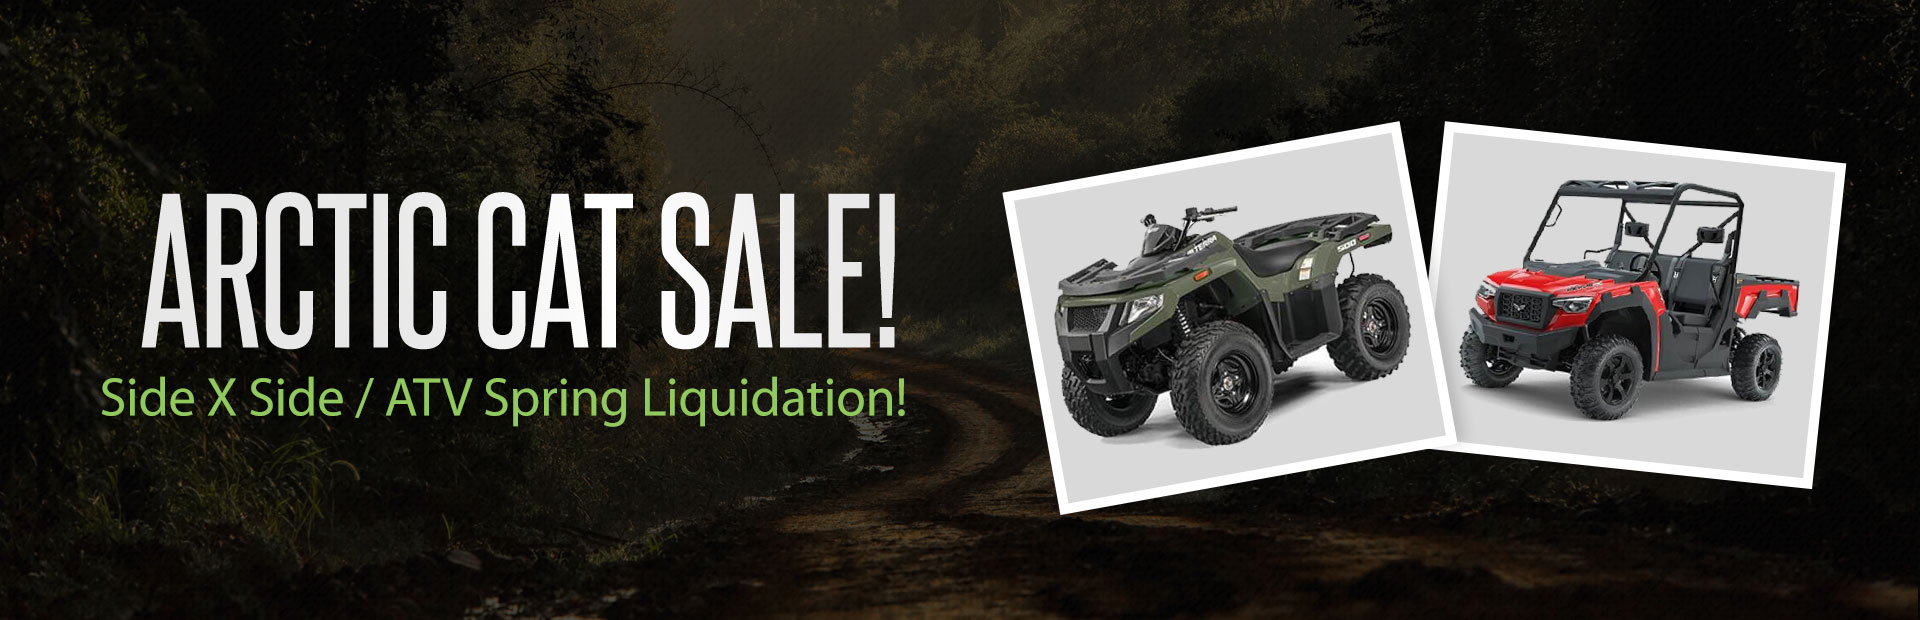 Arctic Cat Sale: Spring liquidation of ATVs and side by sides.